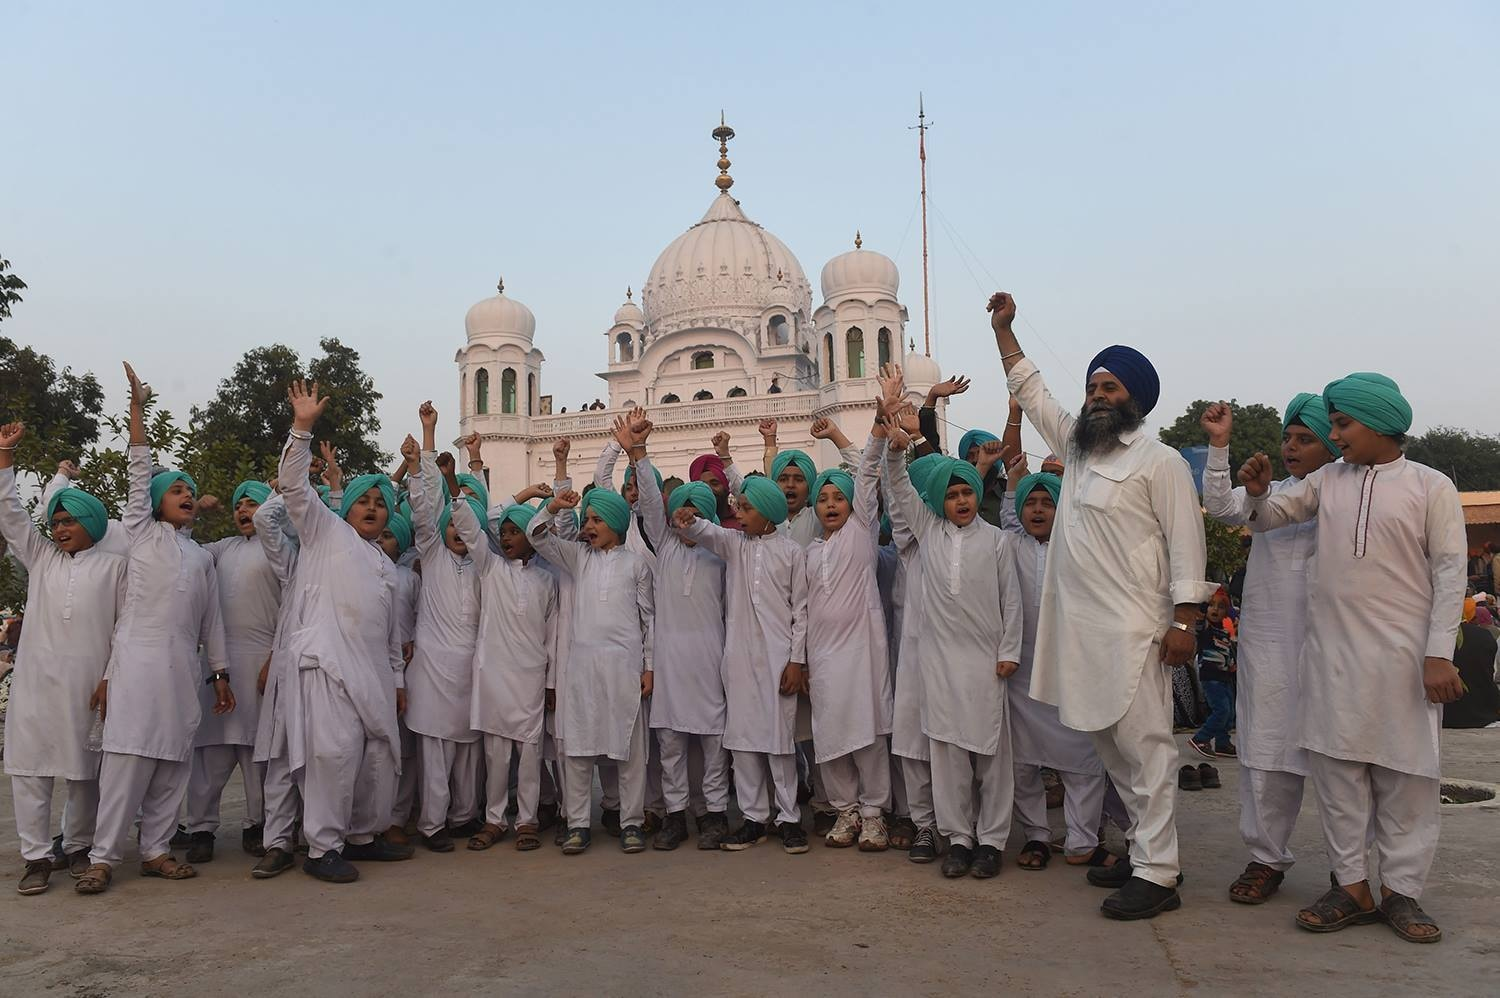 Sikh children shout slogans in front of the Kartarpur Gurdwara Sahib after a groundbreaking ceremony for the Kartarpur Corridor. — AFP